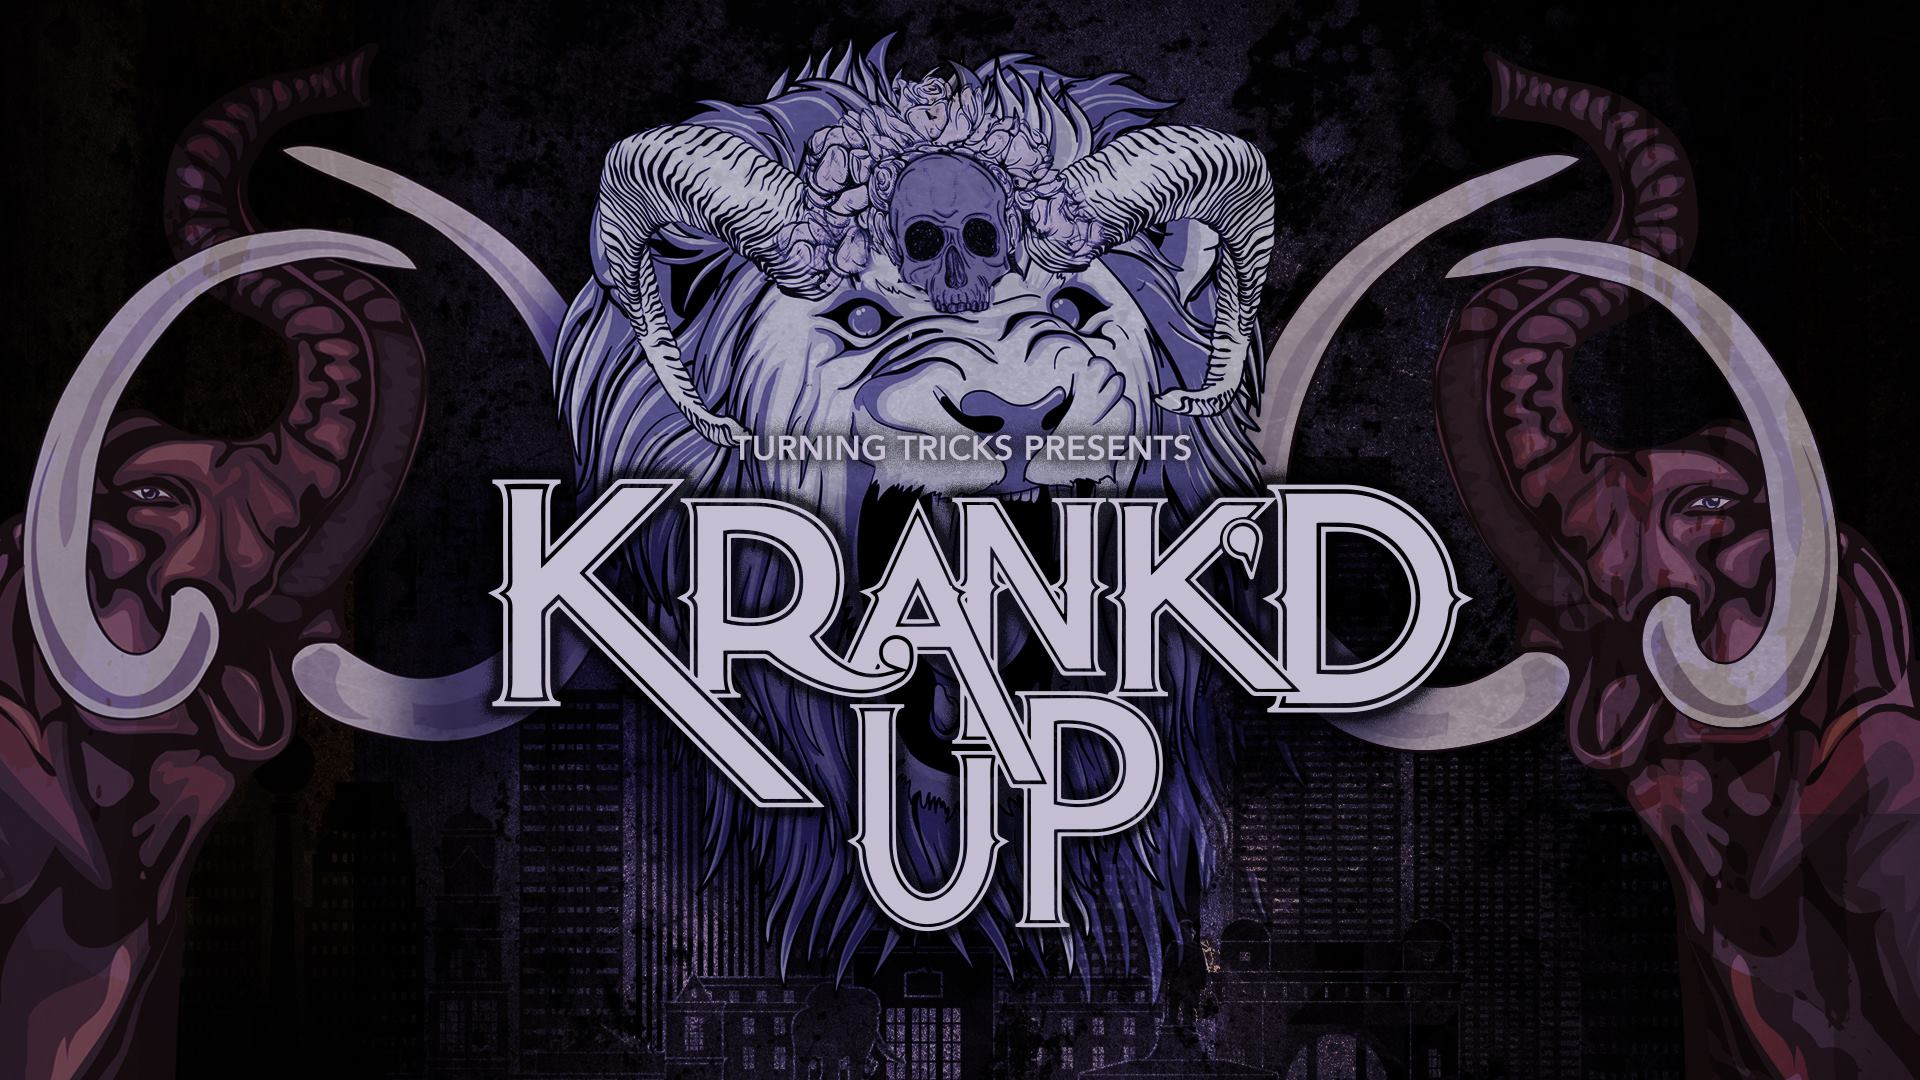 Krank'd Up 2018 takes place on 29 September